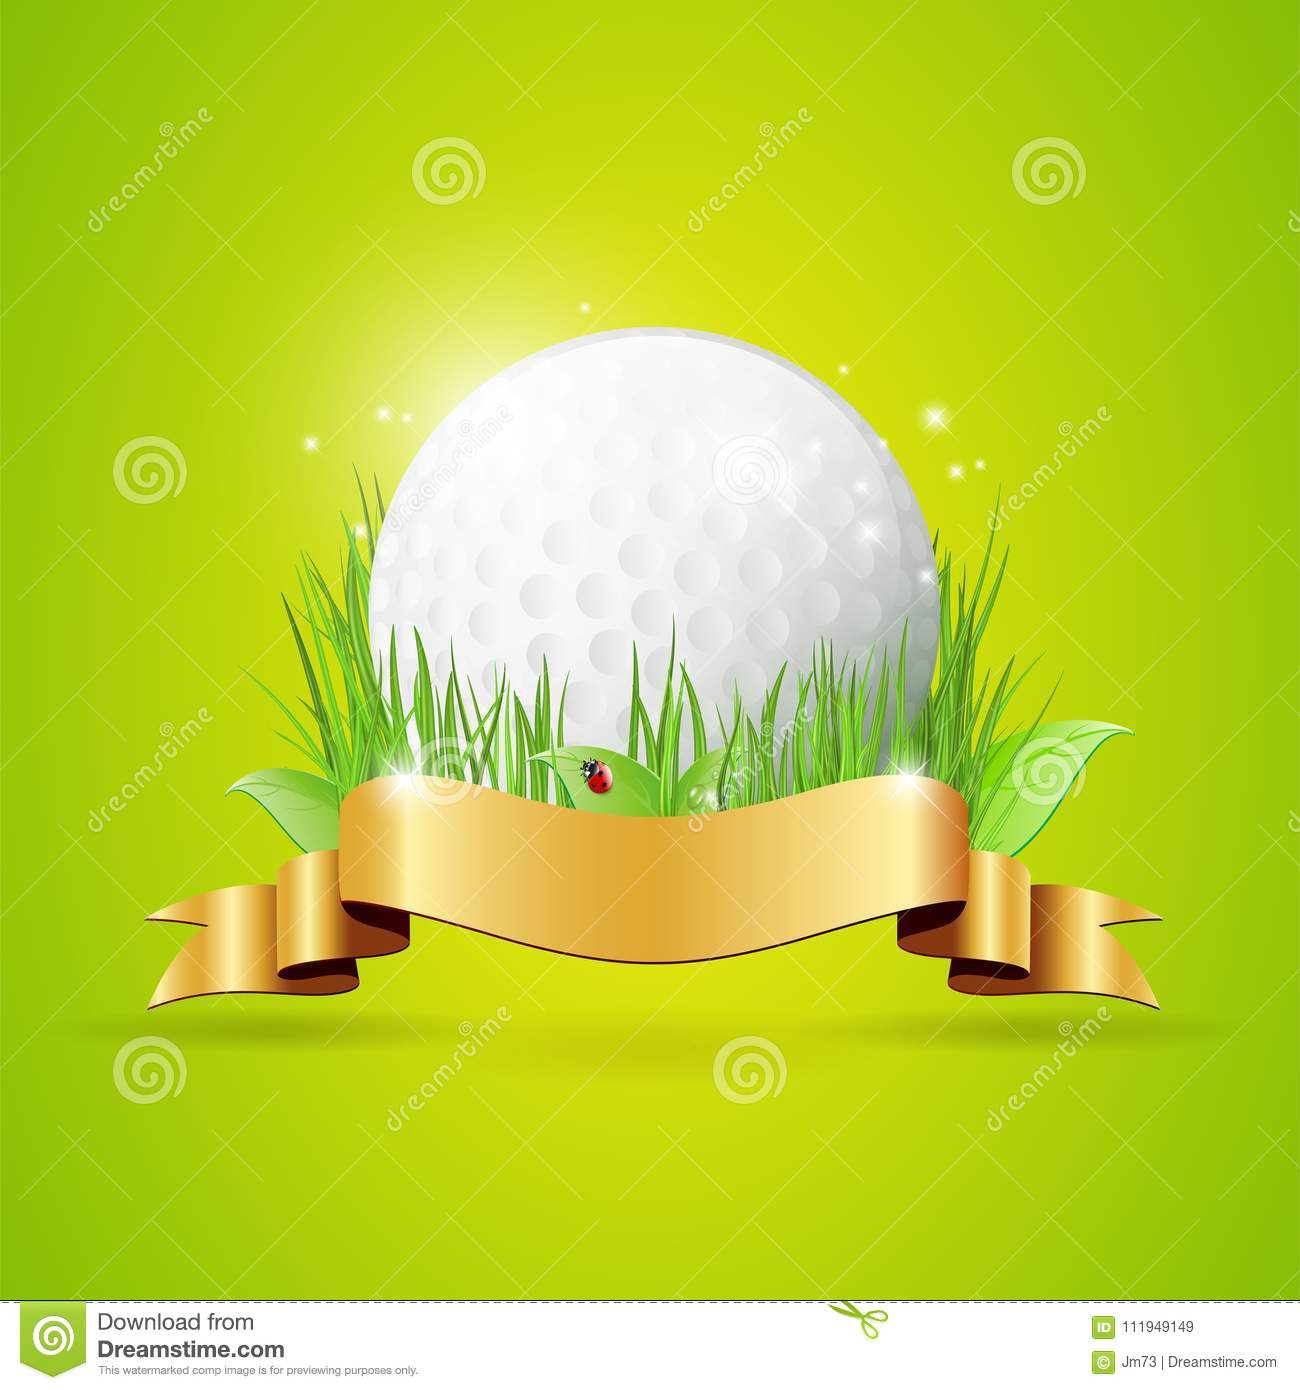 Abstract golf background with ball, grass and golden ribbon